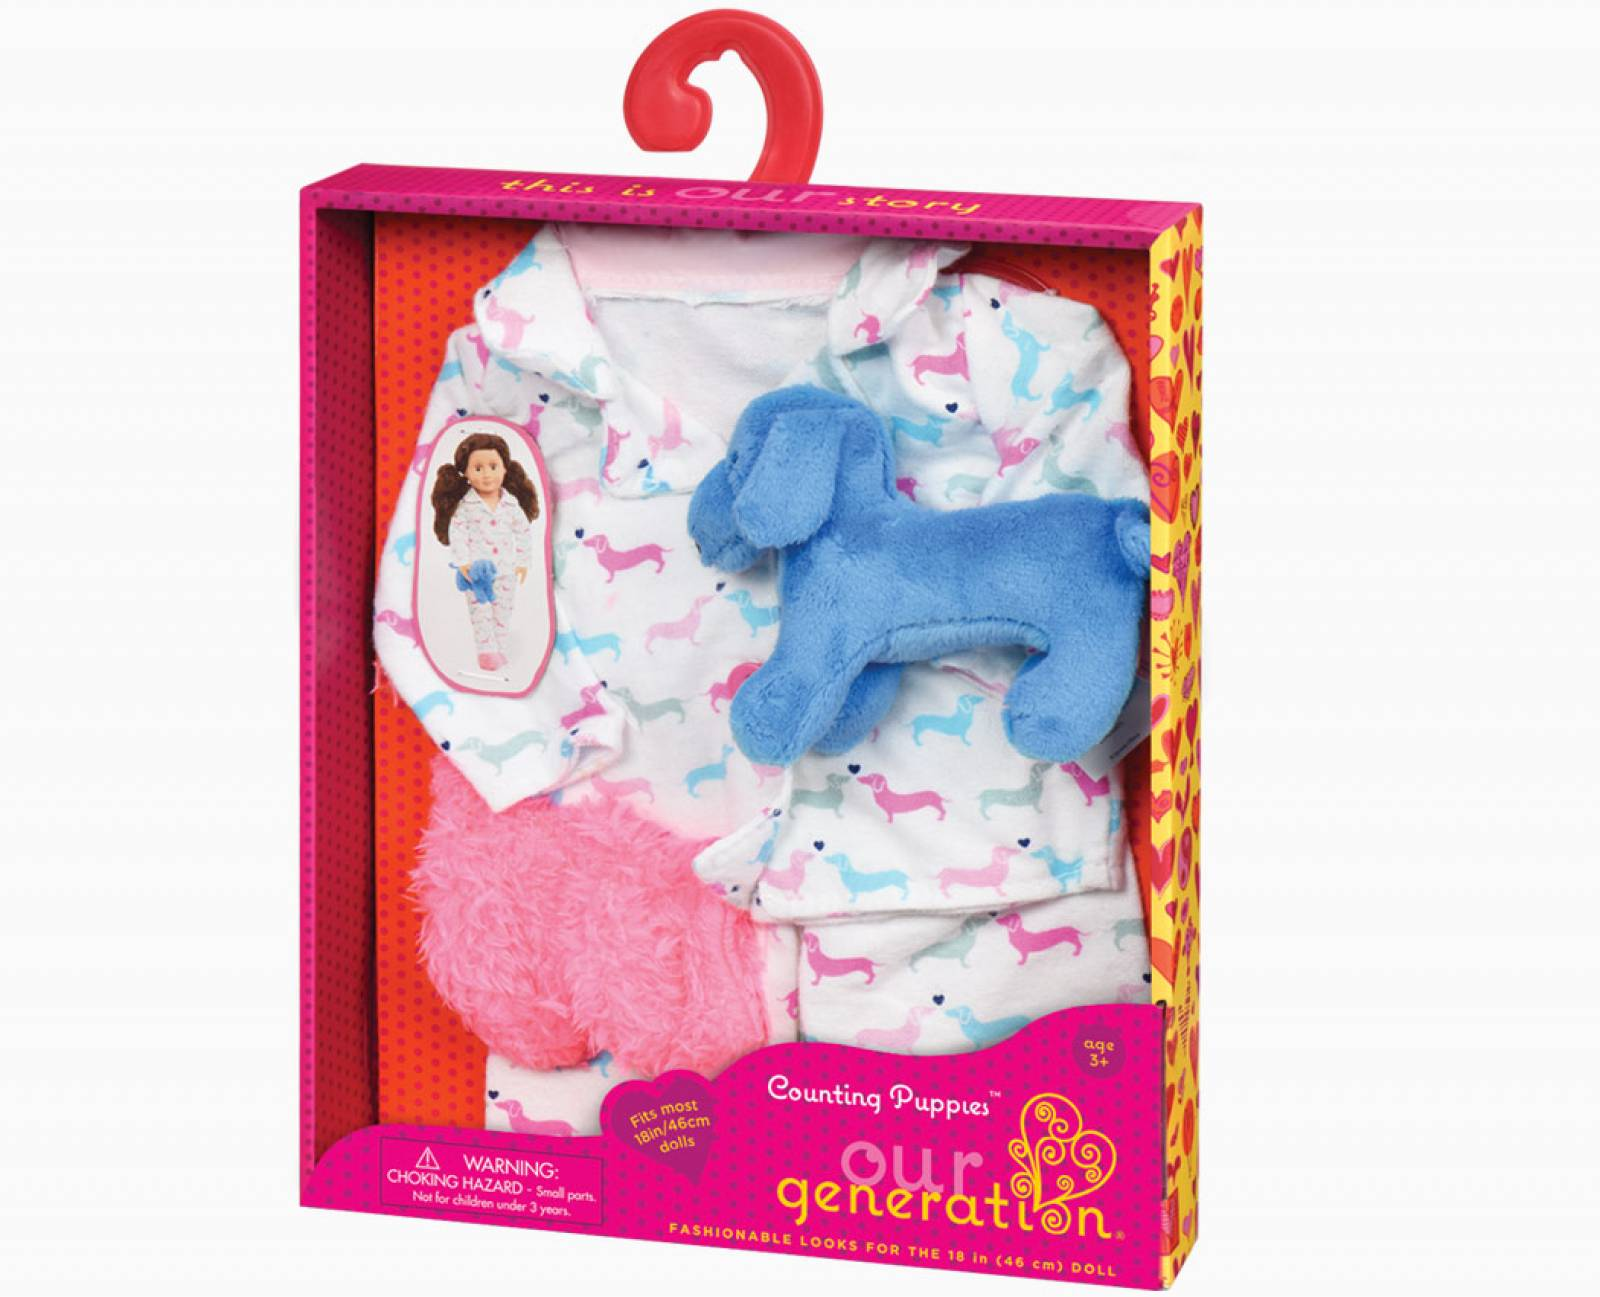 Counting Puppies My Generation Doll Clothes Set 3+ thumbnails